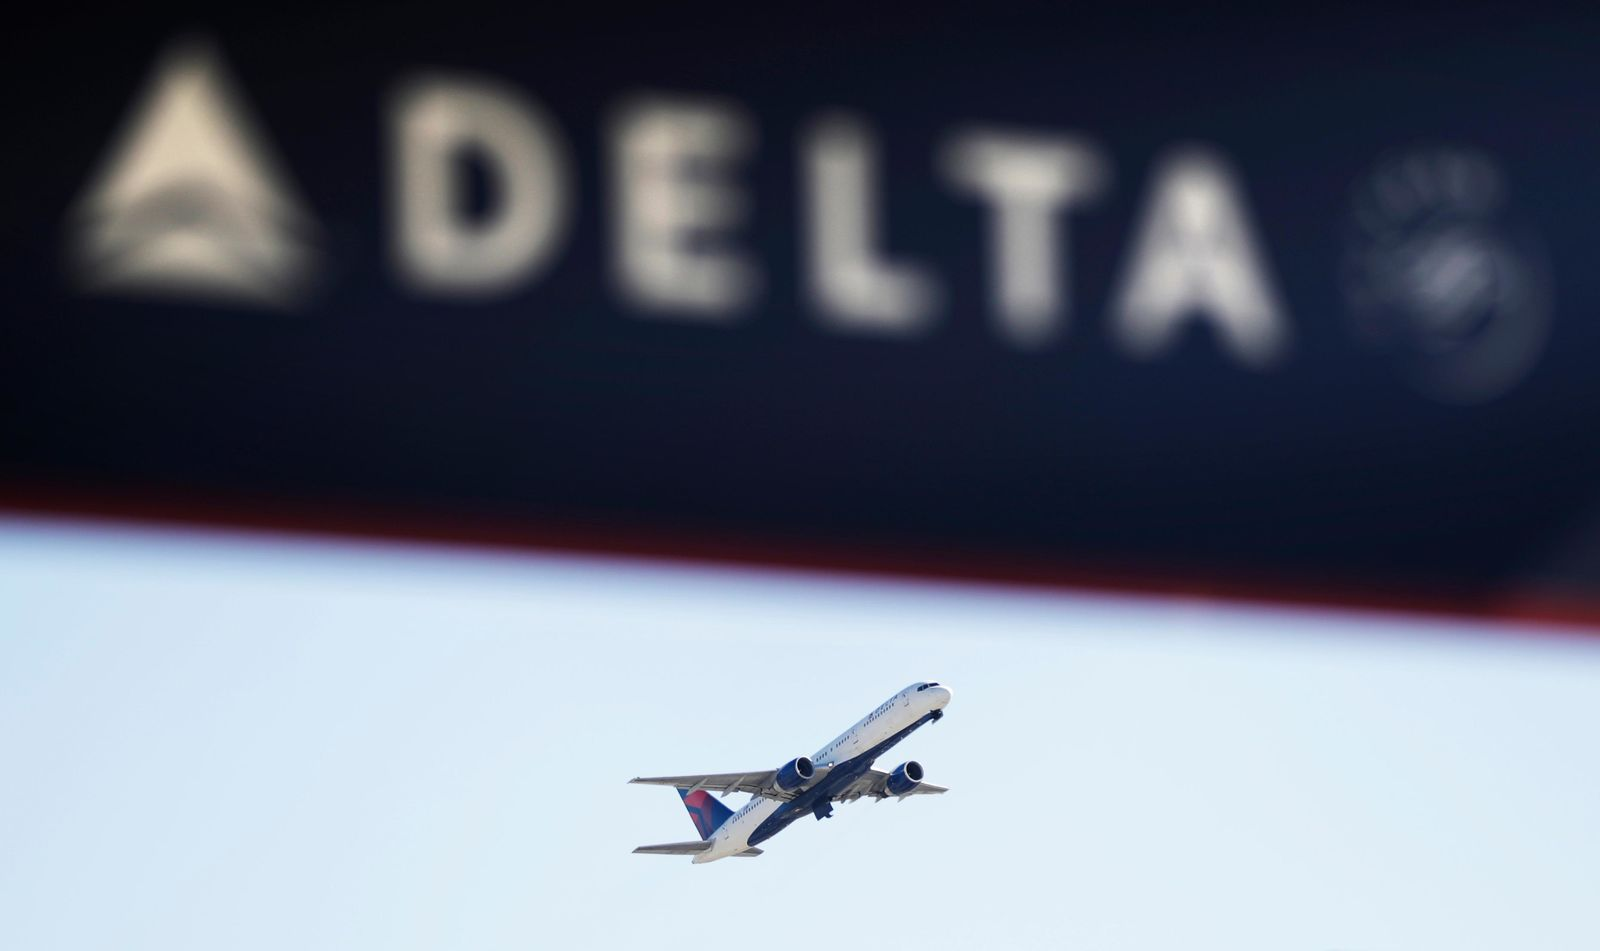 FILE - In this Jan. 30, 2017, file photo, a Delta Air Lines flight takes off from Hartsfield-Jackson International Airport in Atlanta. (AP Photo/David Goldman, File)